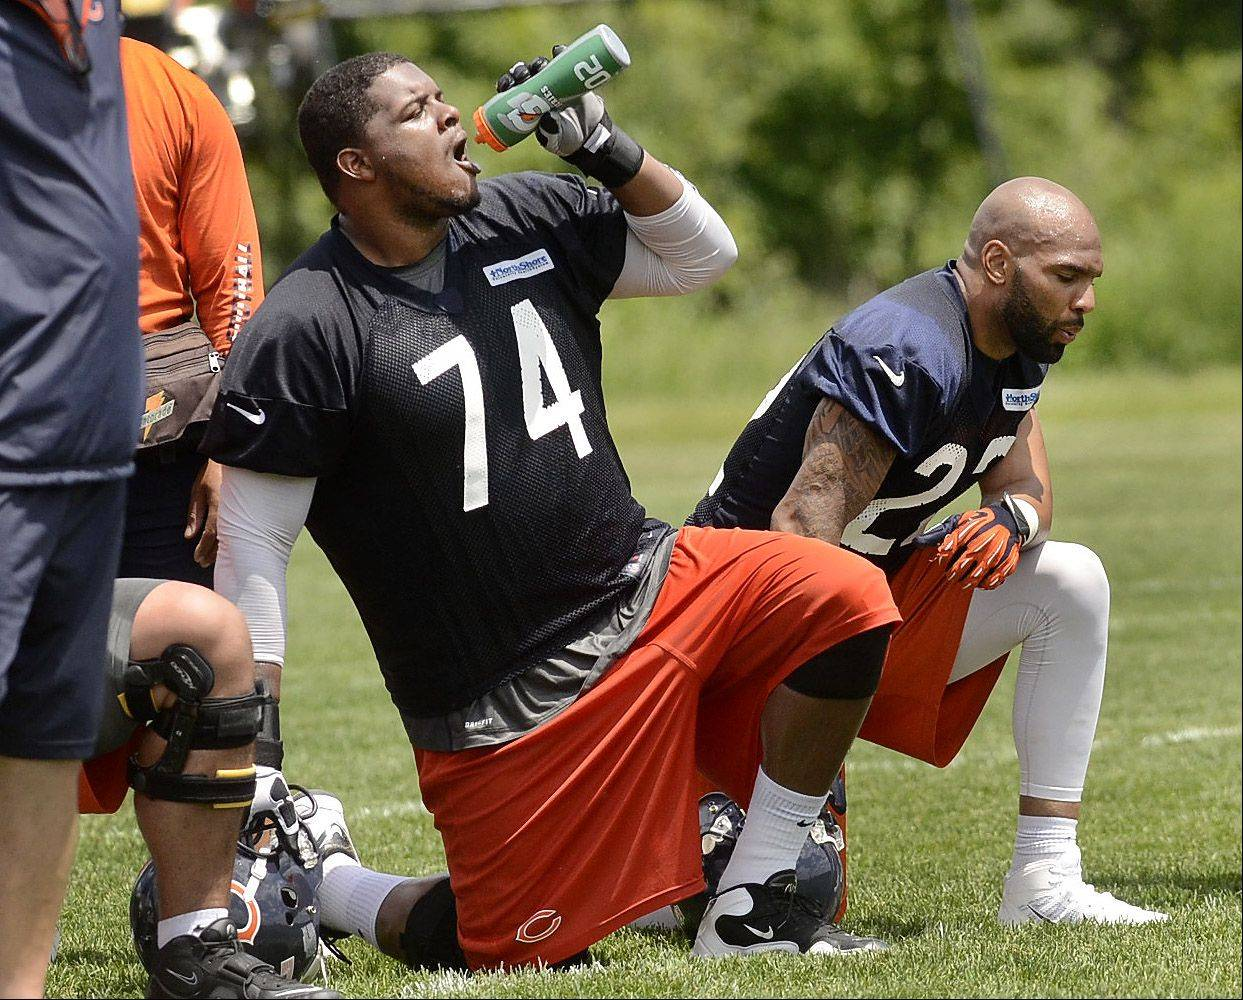 Bob Chwedyk/bchwedyk@dailyherald.com Left tackle Jermon Bushrod, at left kneeling alongside running back Matt Forte, is nursing a calf injury. But he hopes to play in Friday�s preseason opener at Carolina.